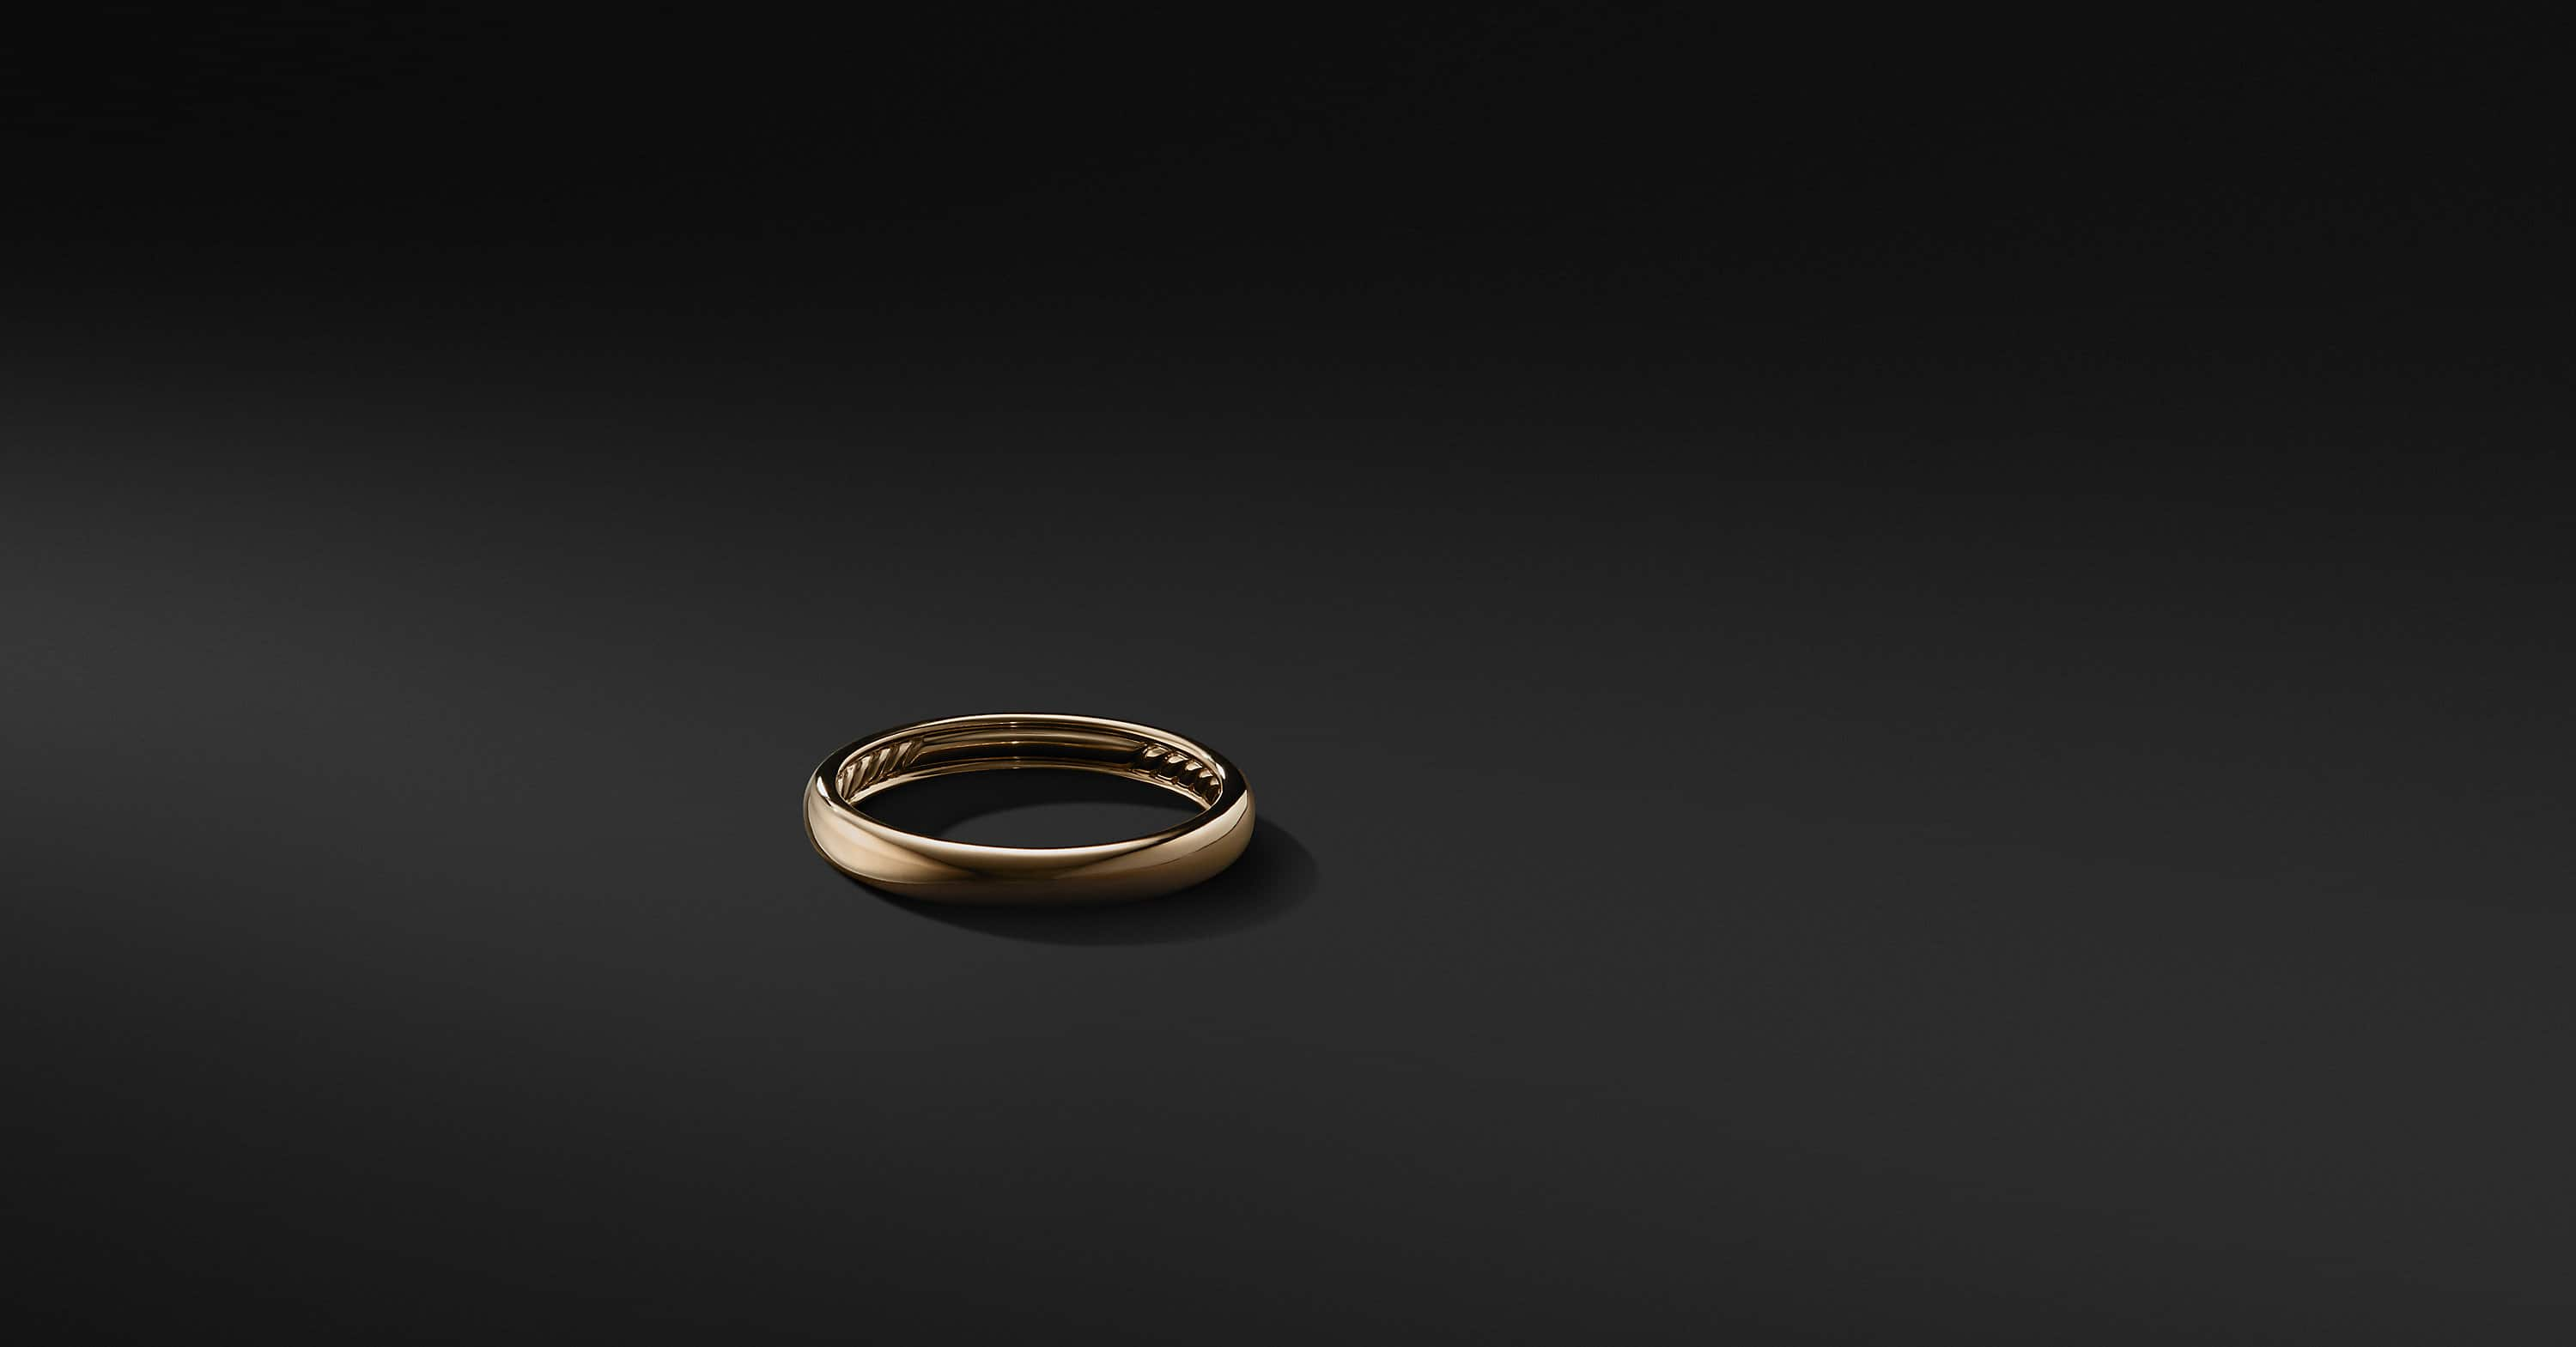 DY Classic Band in 18K Gold, 3.5mm